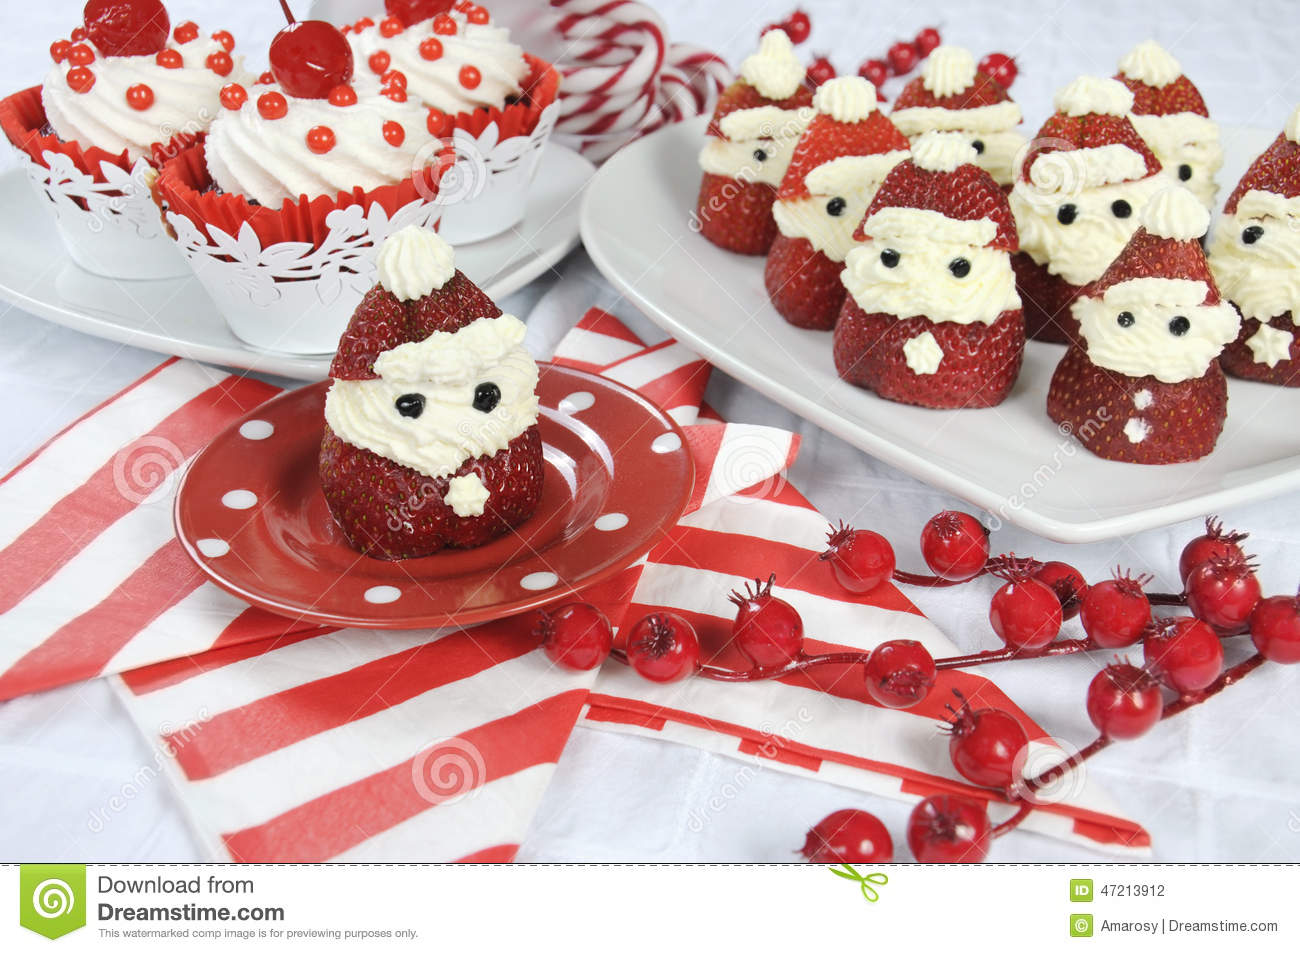 Christmas Holiday Strawberry Santas With Cherry Red Velvet